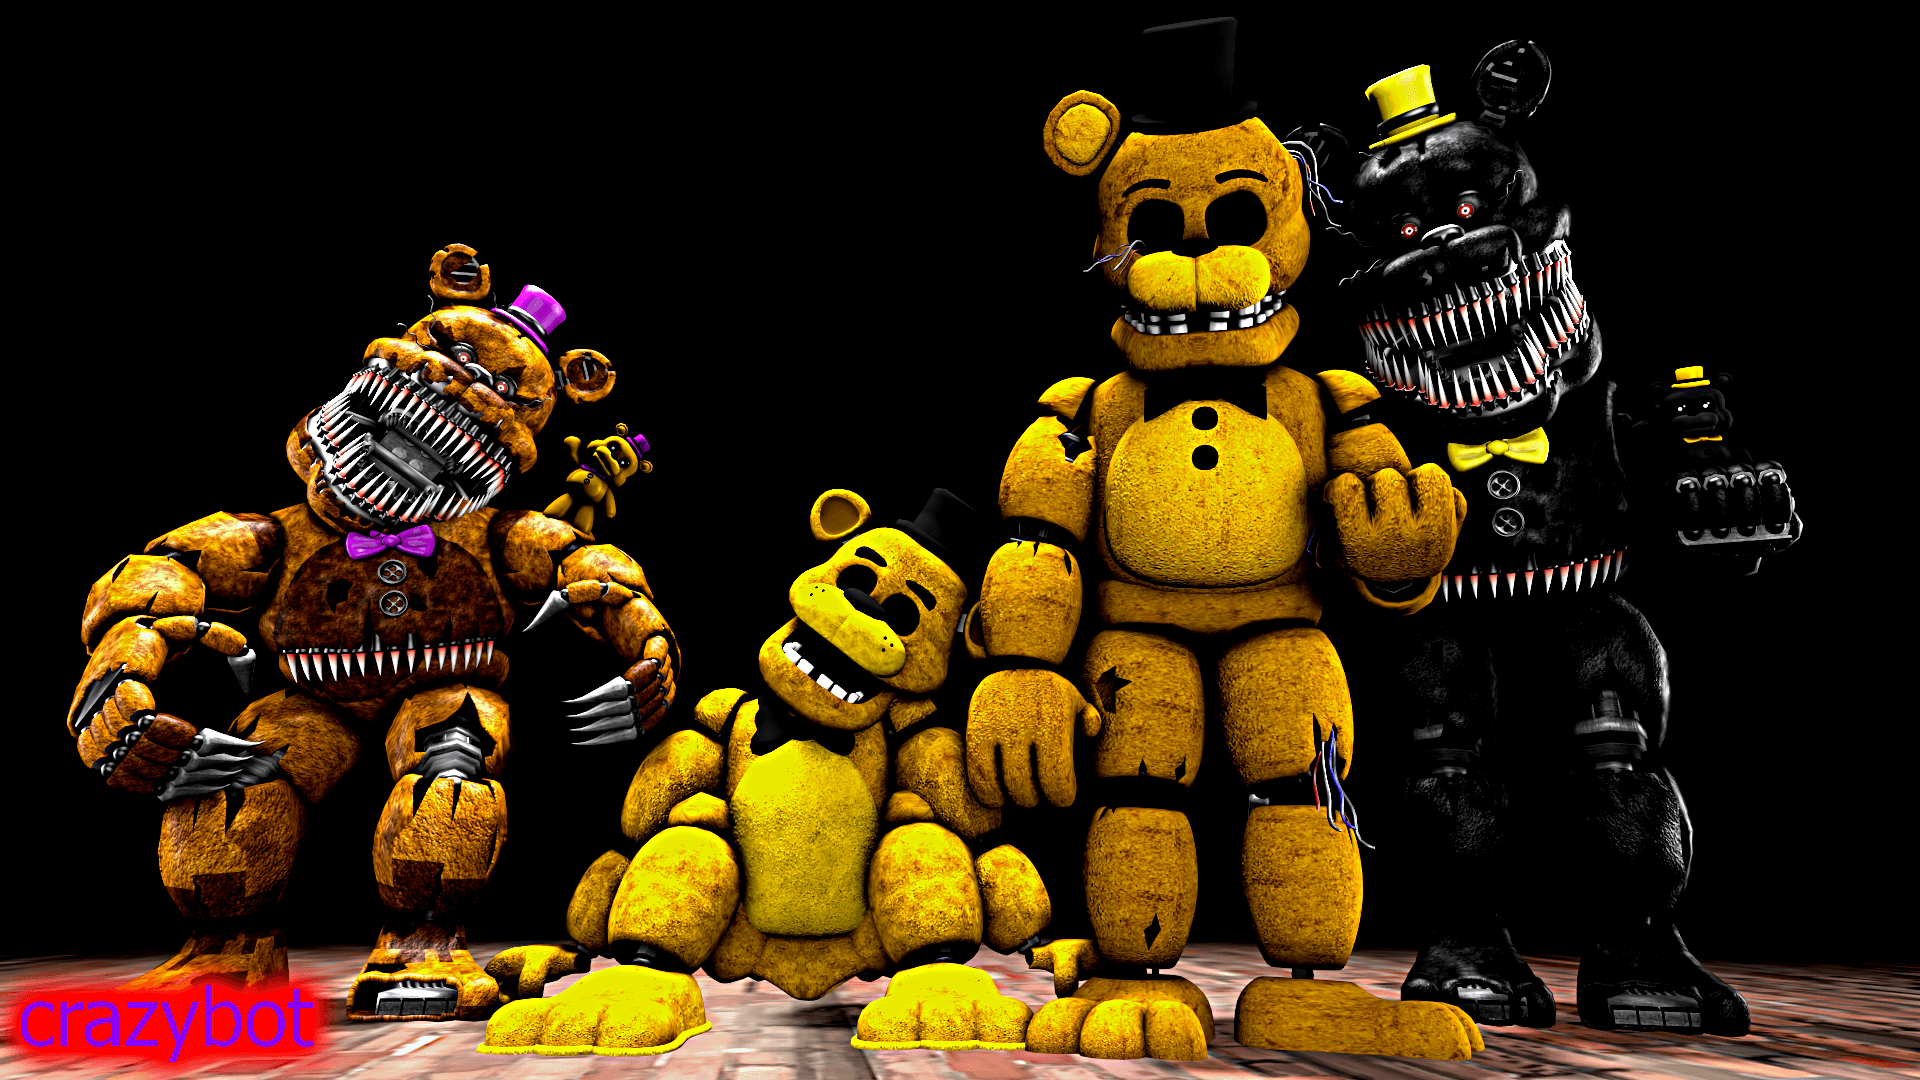 Golden Freddy Wallpapers Wallpaper Cave